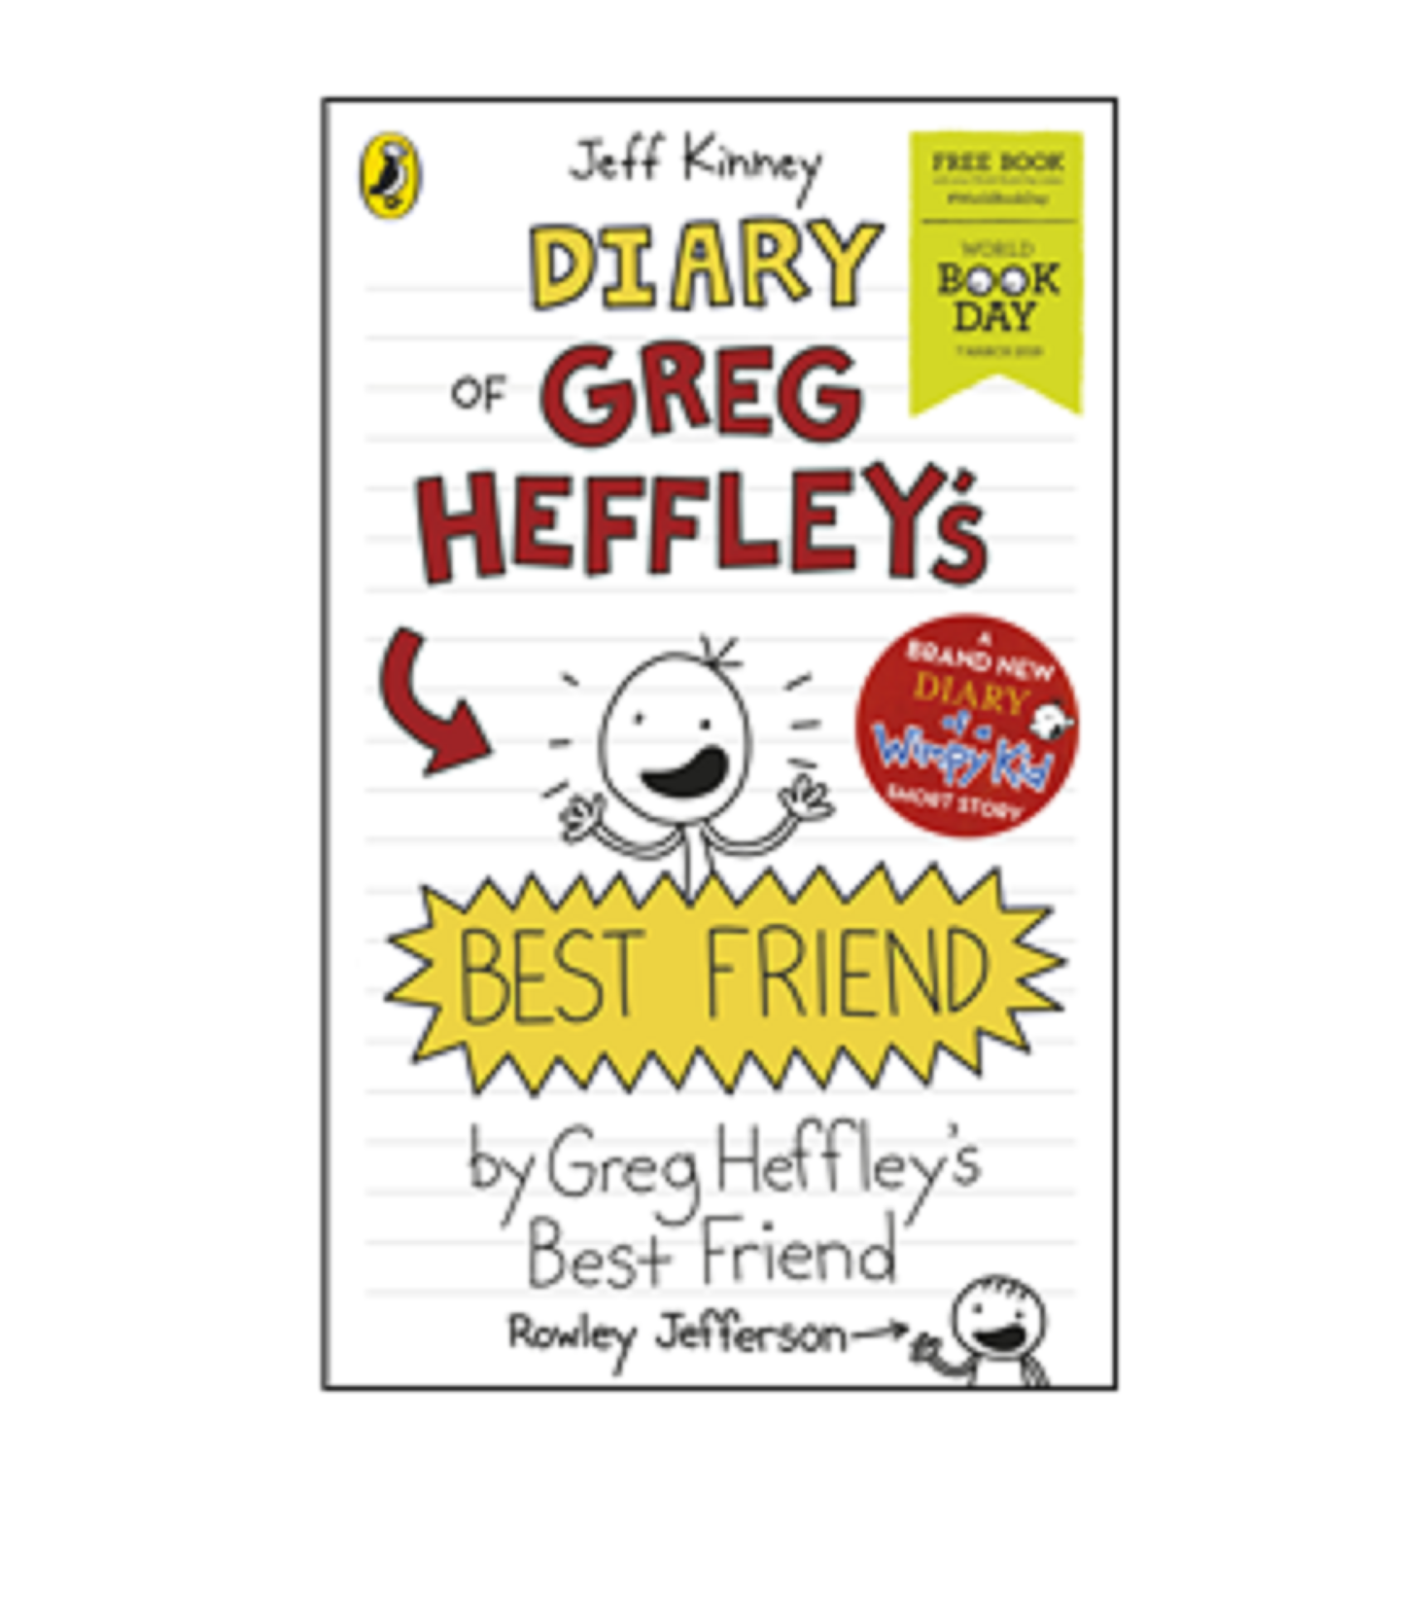 Diary of Greg Heffley's Best Friend By Jeff Kinney World Book Day 2019 Wimpy Kid 2